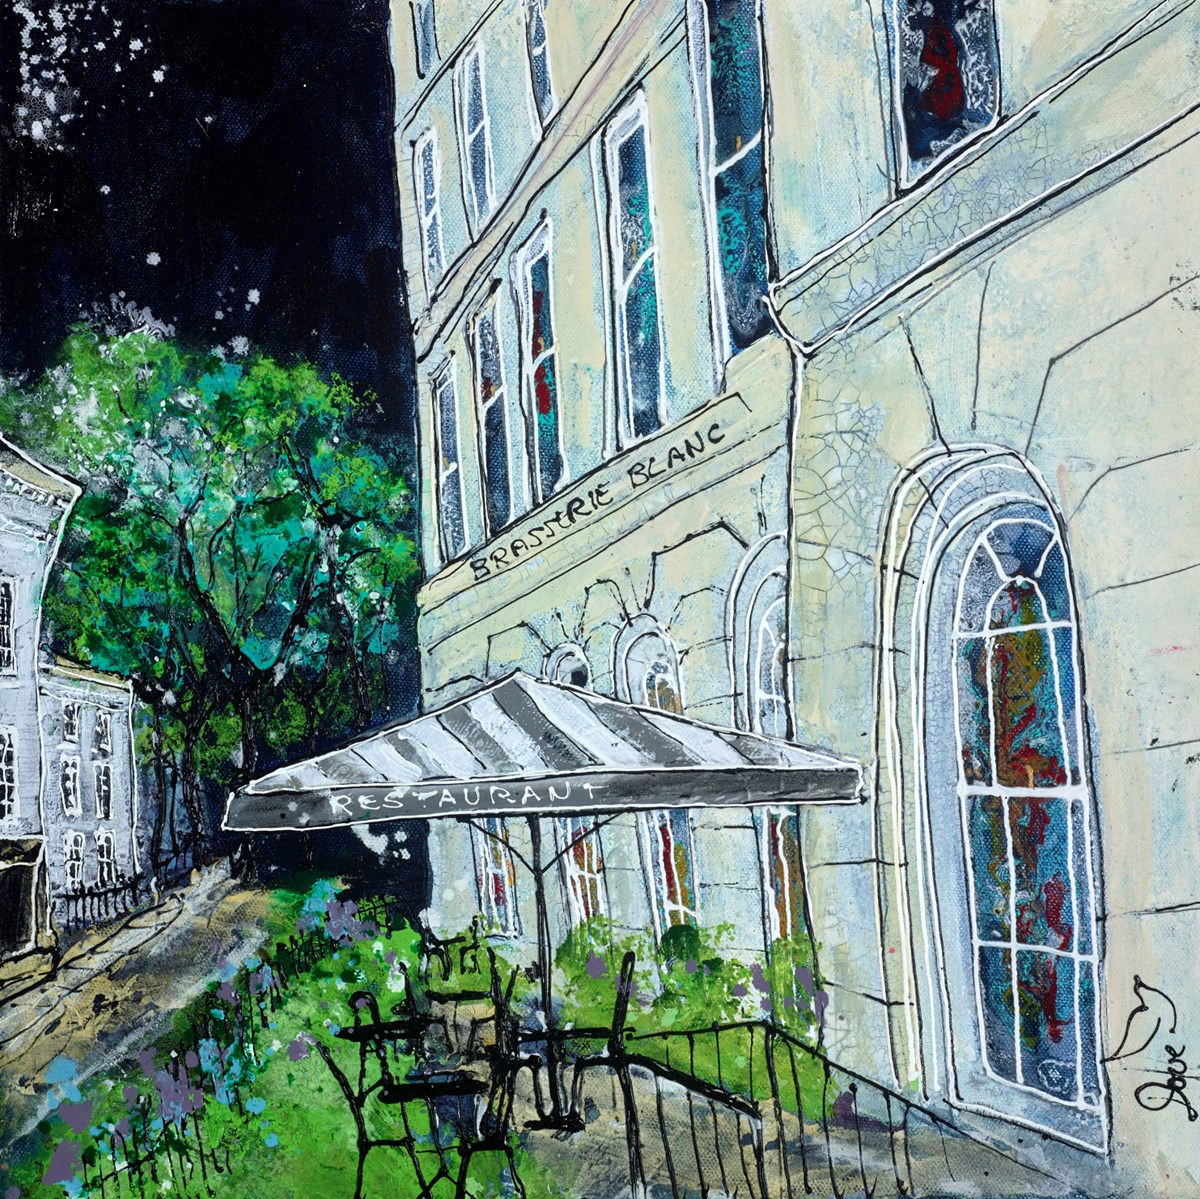 Brasserie Blanc by katharine dove -  sized 16x16 inches. Available from Whitewall Galleries